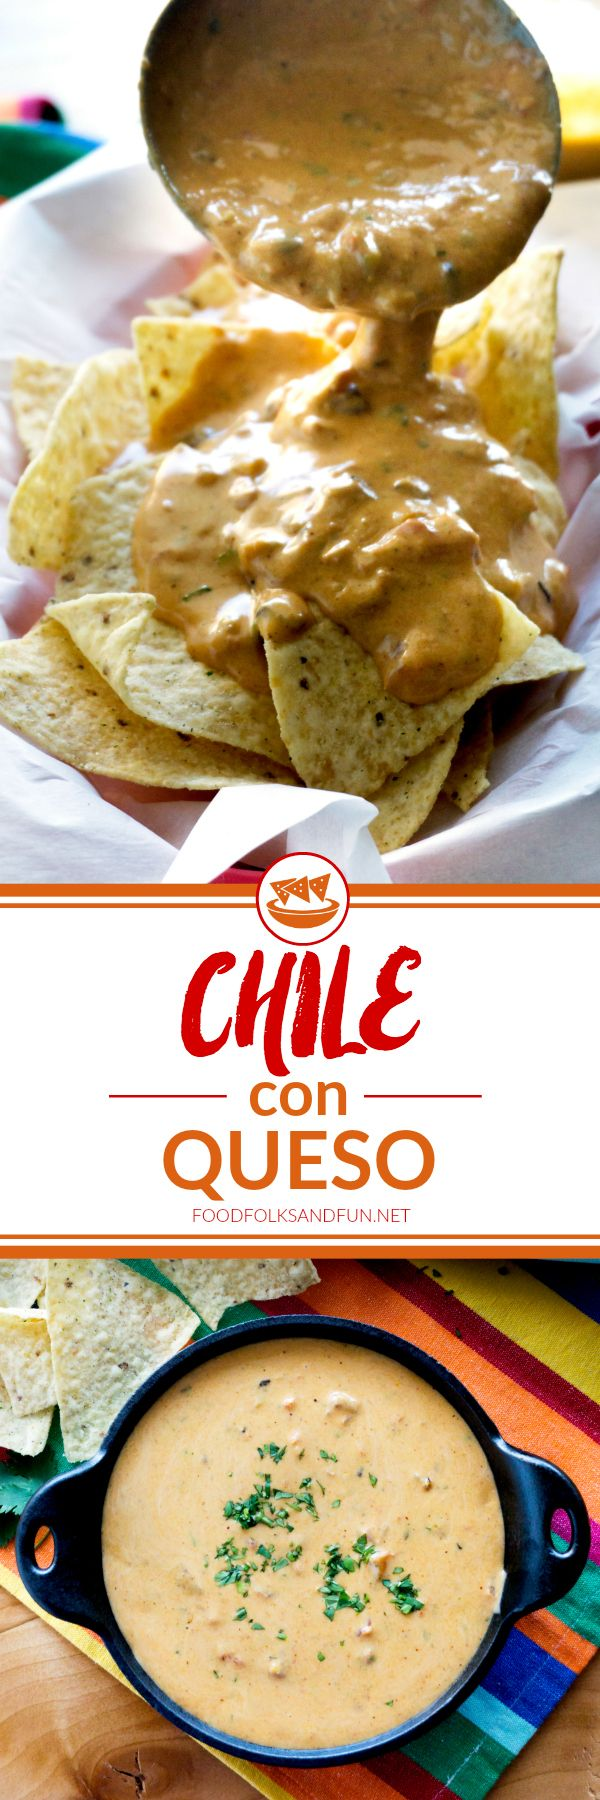 This is the only Chile con Queso recipe you'll need for parties, game day, snacks, and more! It's made from scratch, and without processed cheese like Velveeta!